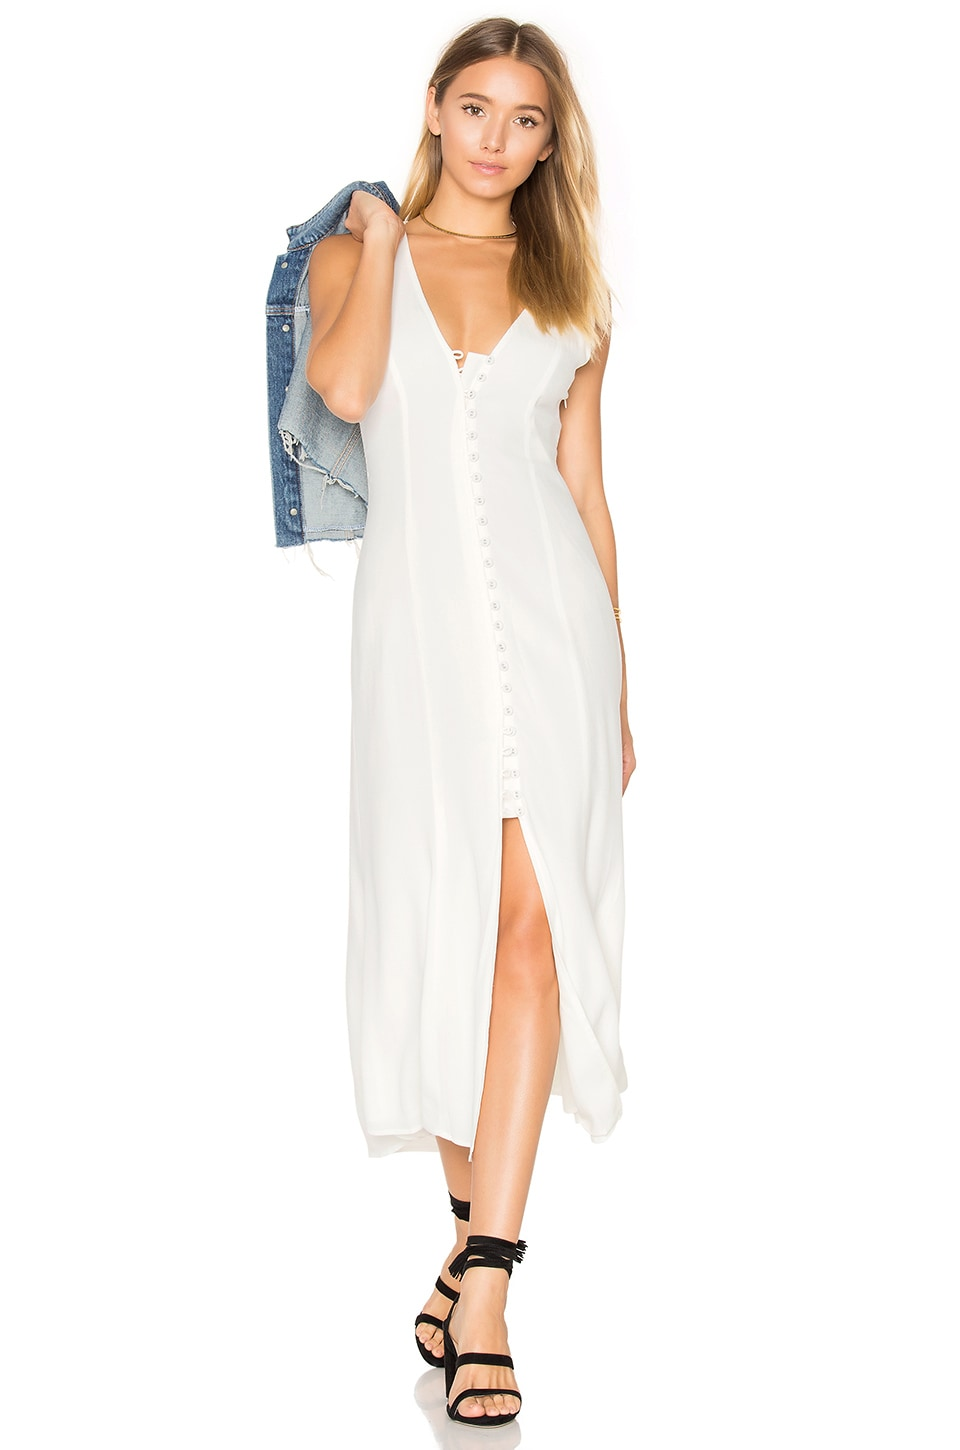 Privacy Please Lomax Dress in White